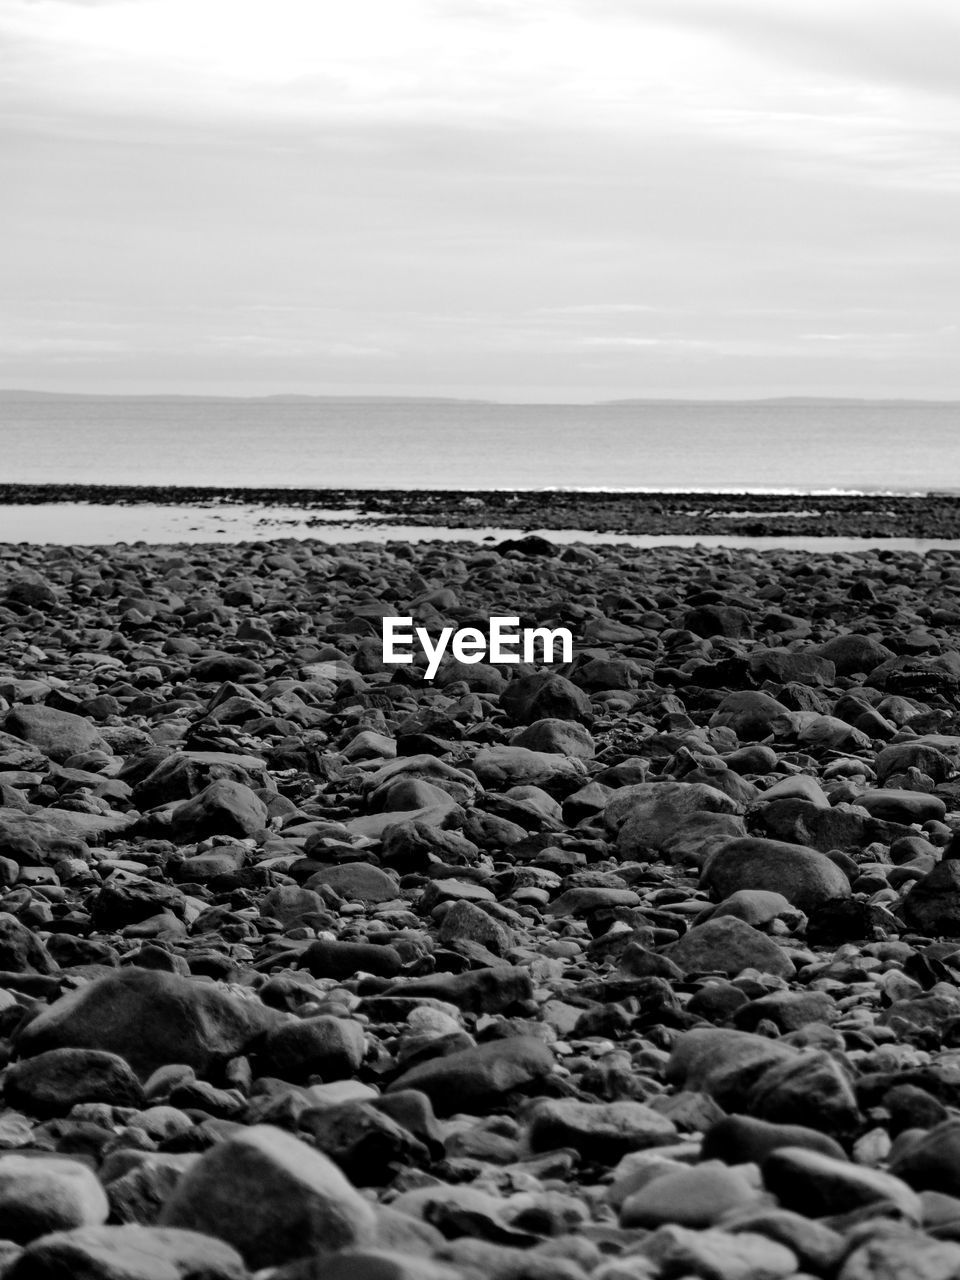 sky, sea, water, scenics - nature, horizon, horizon over water, tranquil scene, land, beauty in nature, tranquility, nature, beach, pebble, rock, no people, stone, day, solid, cloud - sky, surface level, outdoors, gravel, rocky coastline